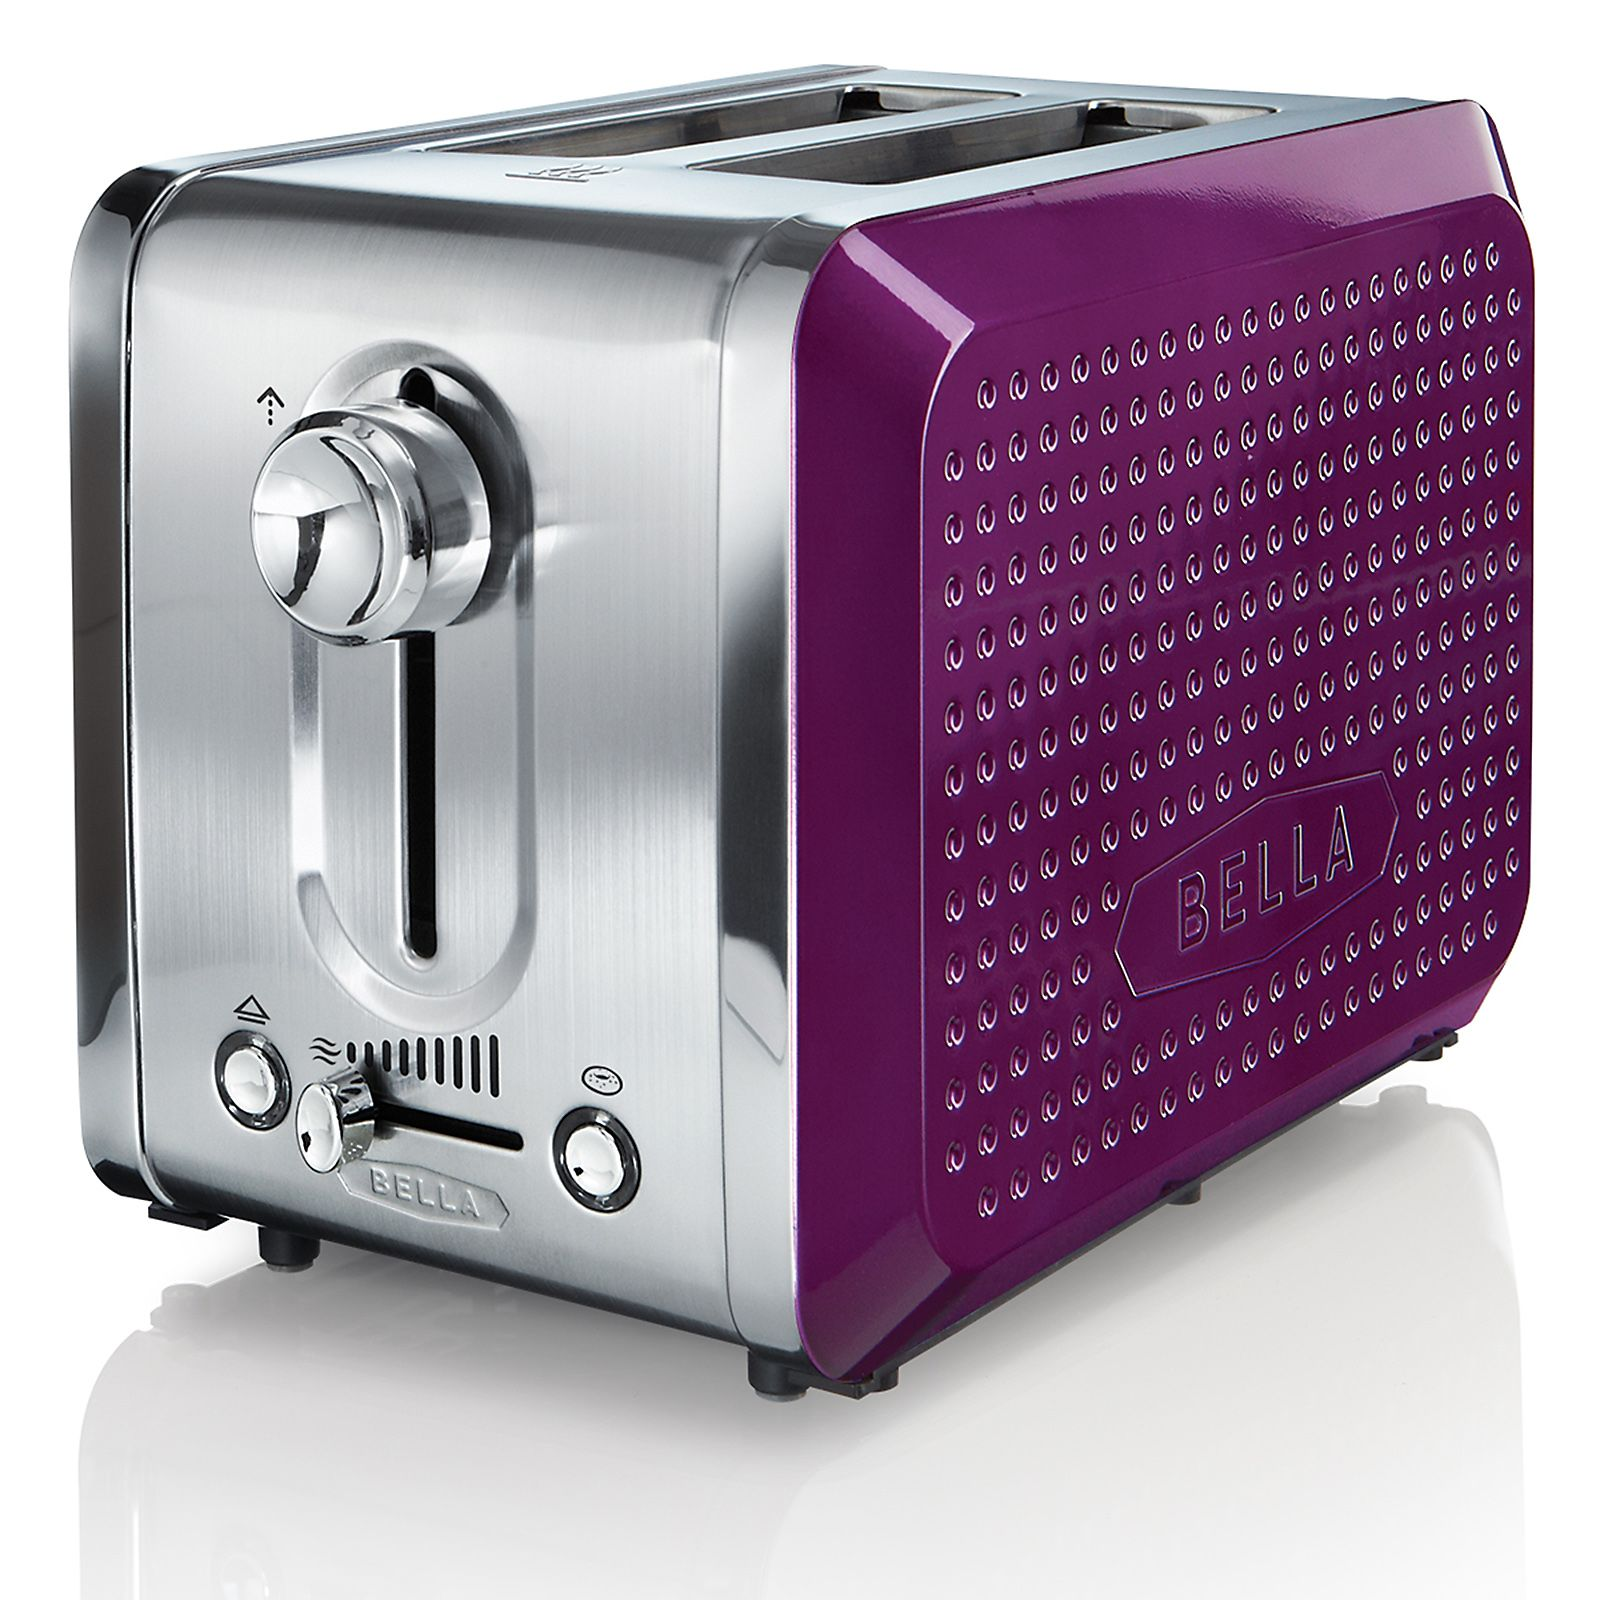 2499 Bella Dots 2 Slice Toaster Purple